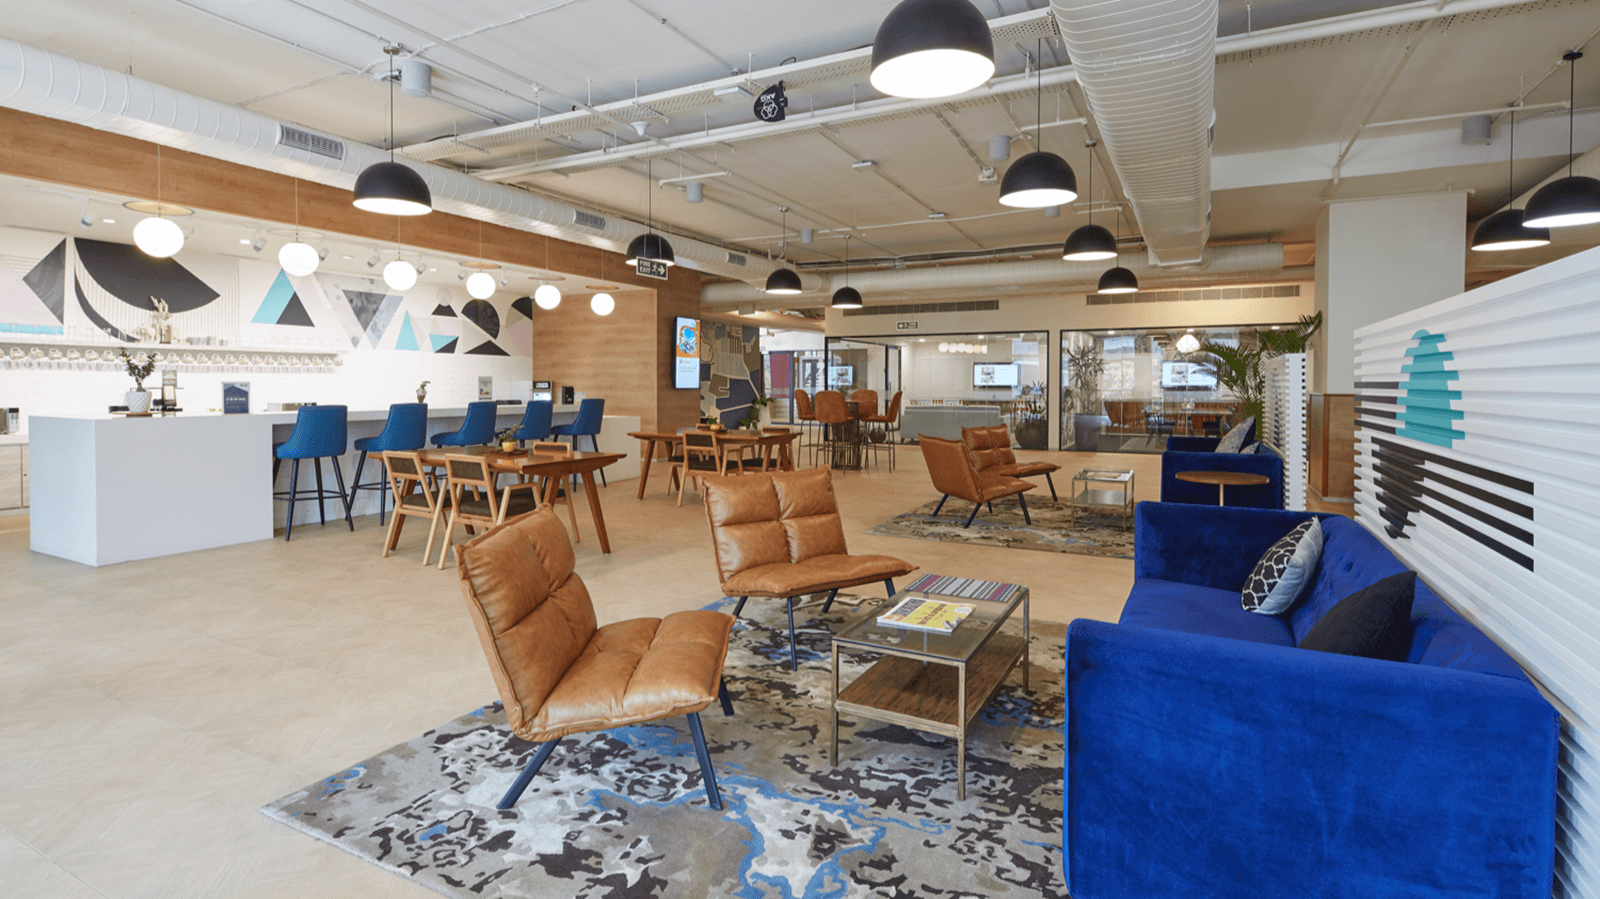 Cowrks Coworking Space in Banglore